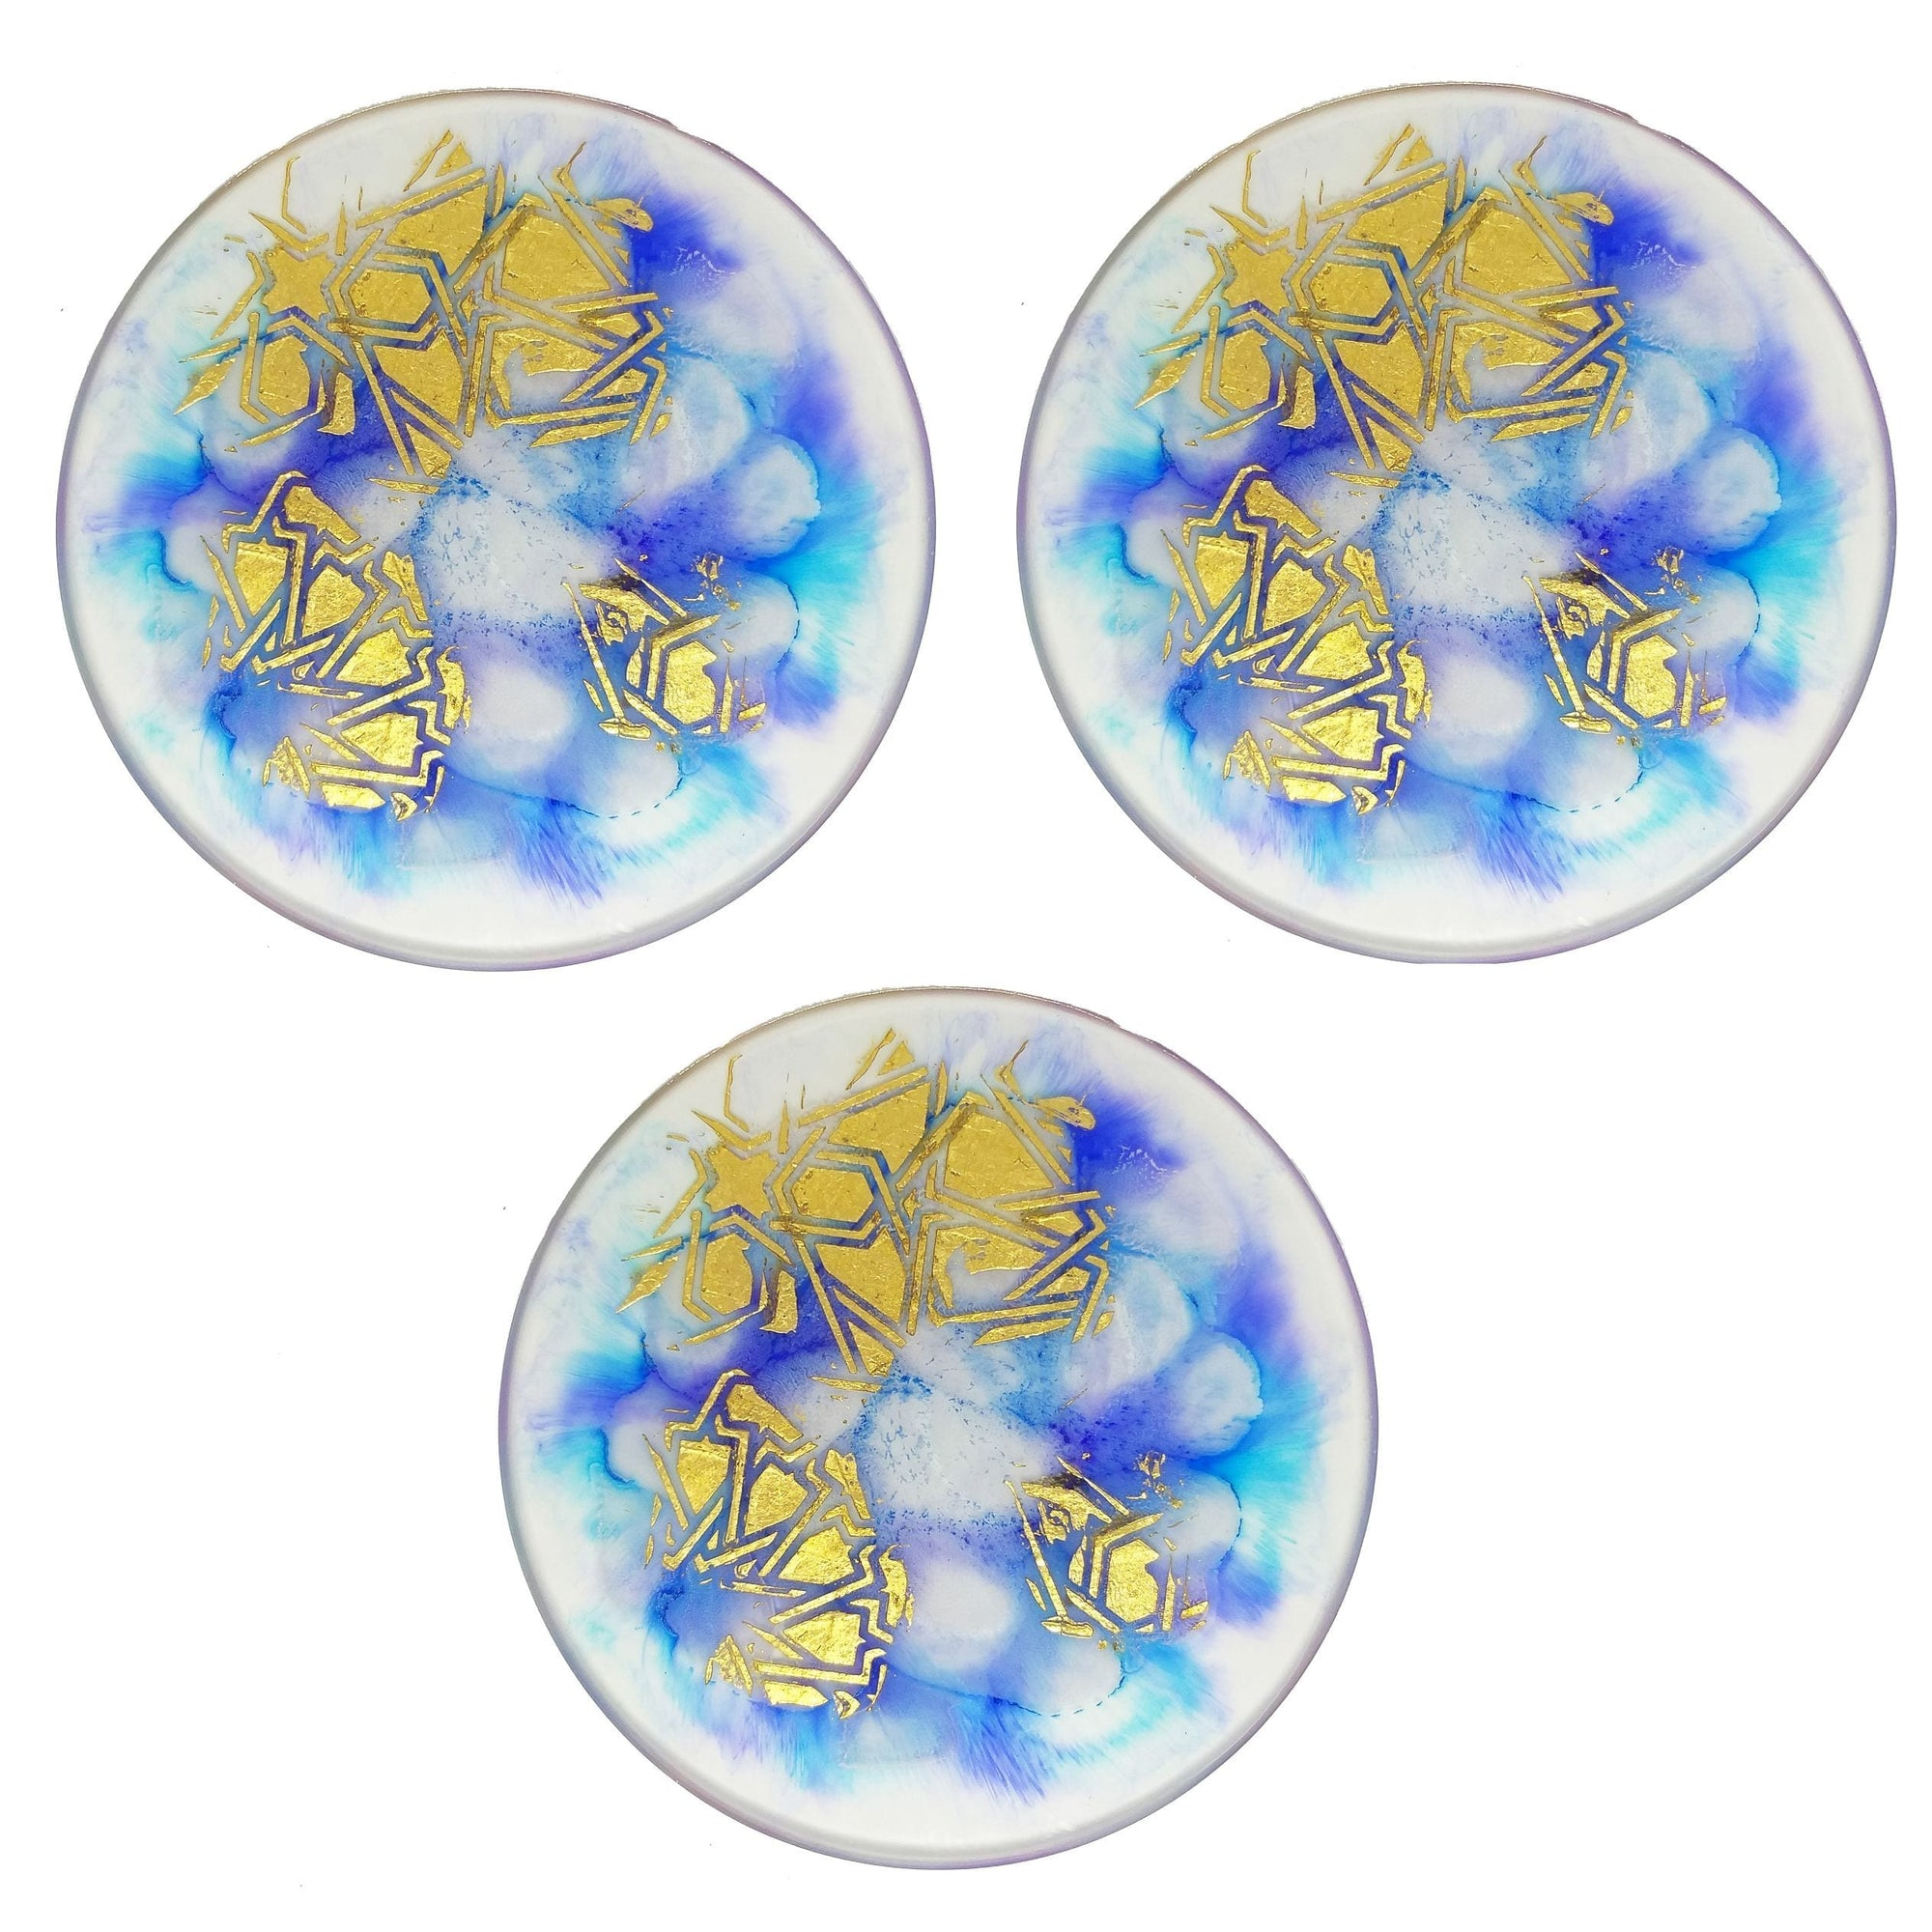 Blue and Gold Resin Coasters